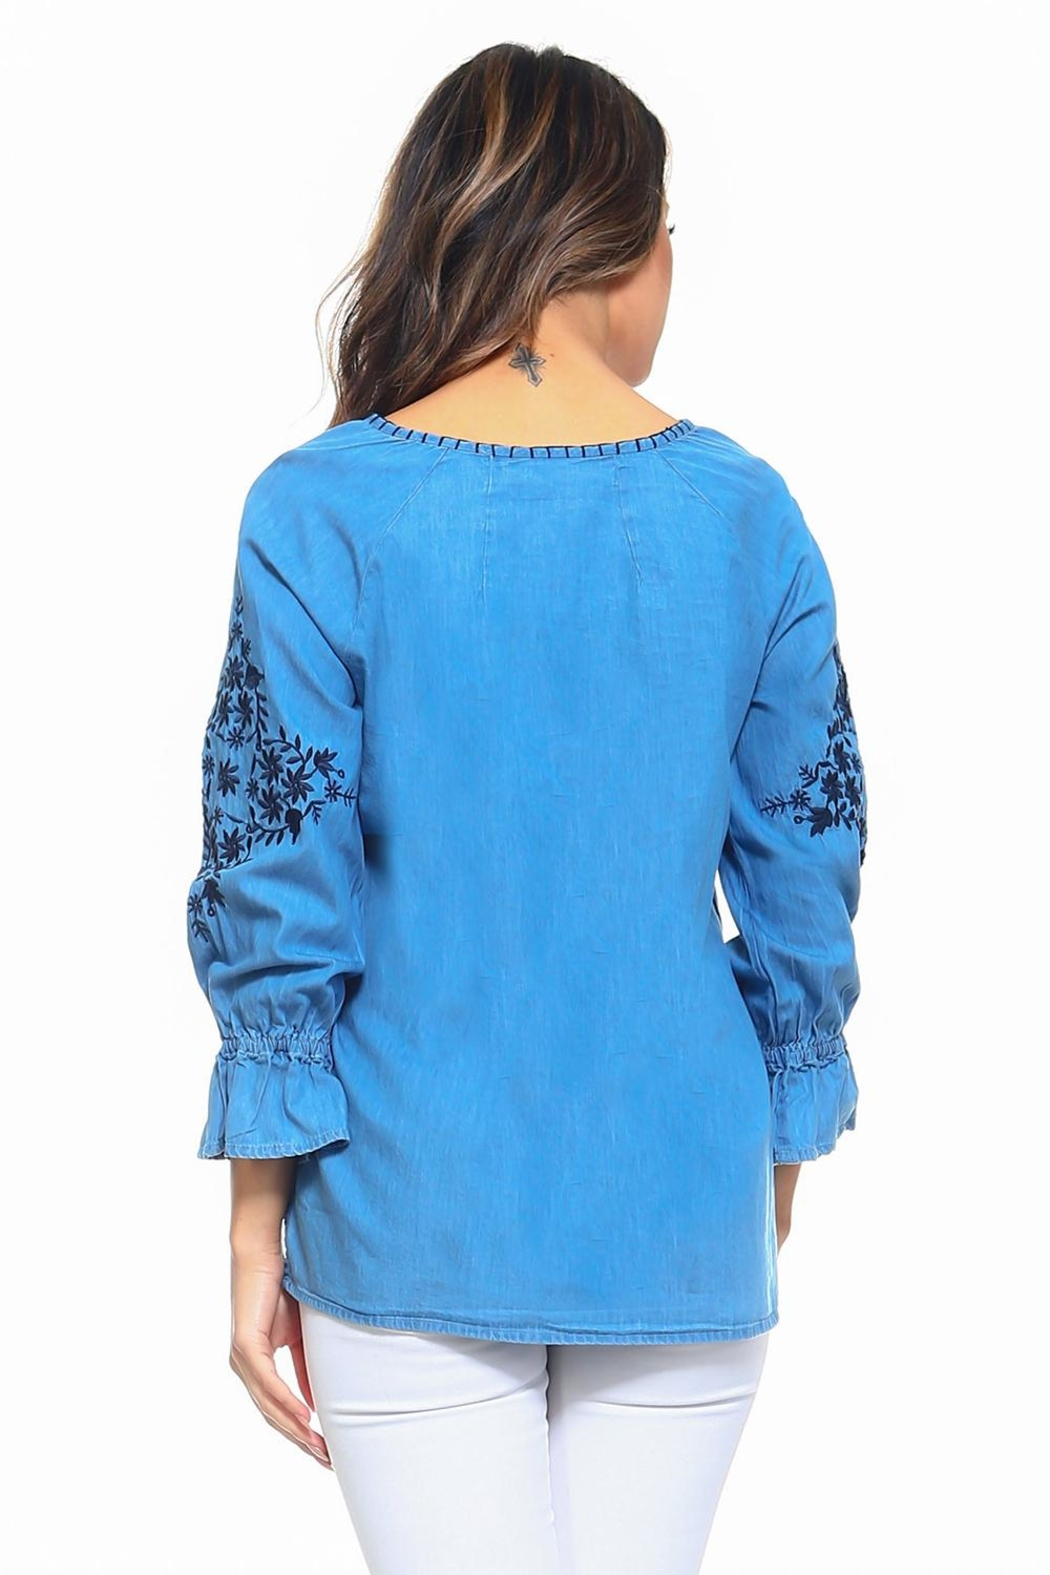 Maison Coupe Denim Embroidered Top - Back Cropped Image